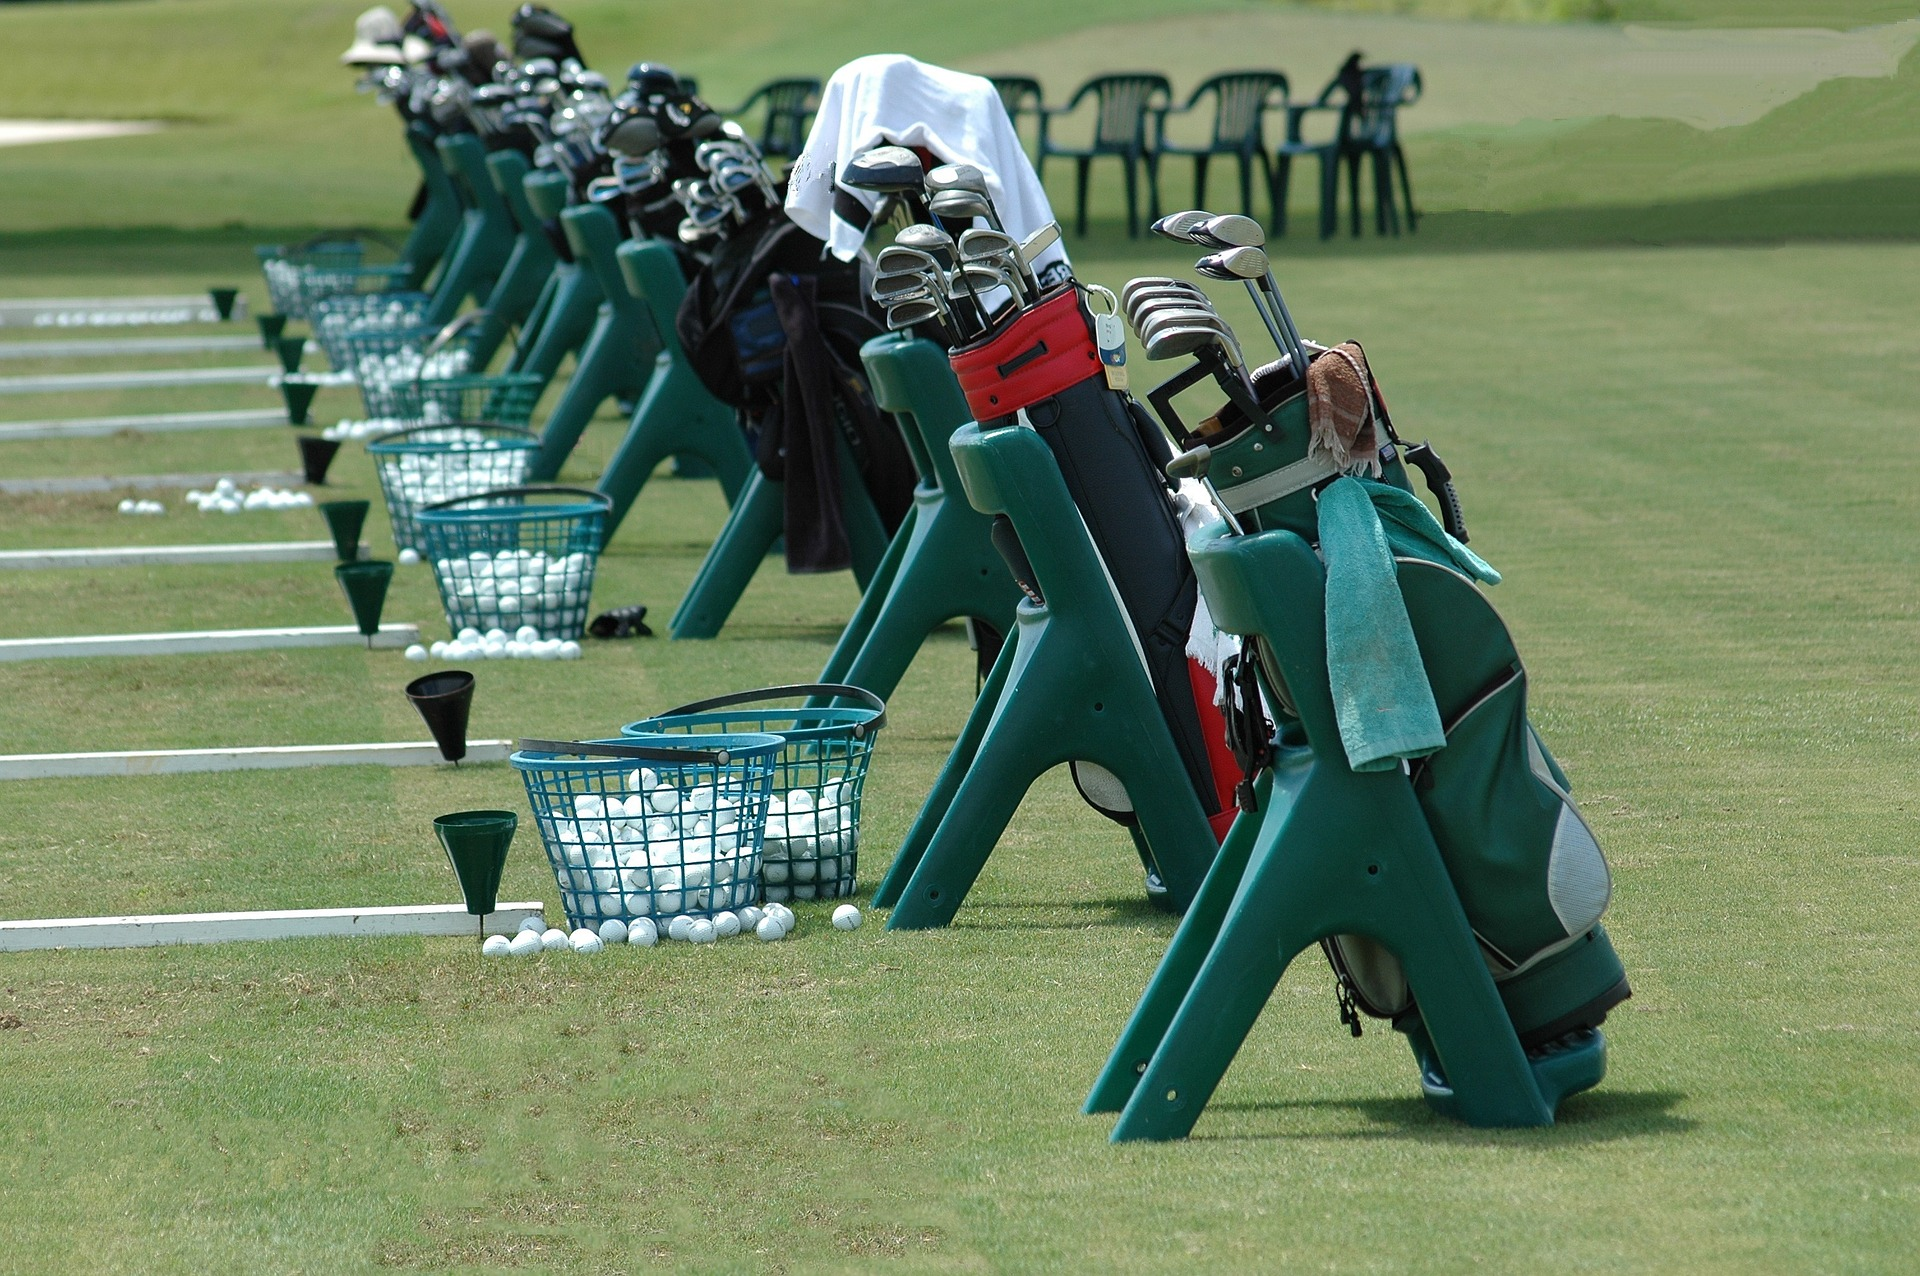 Academy of Golf Dynamics can help you find what you need to start golfing.